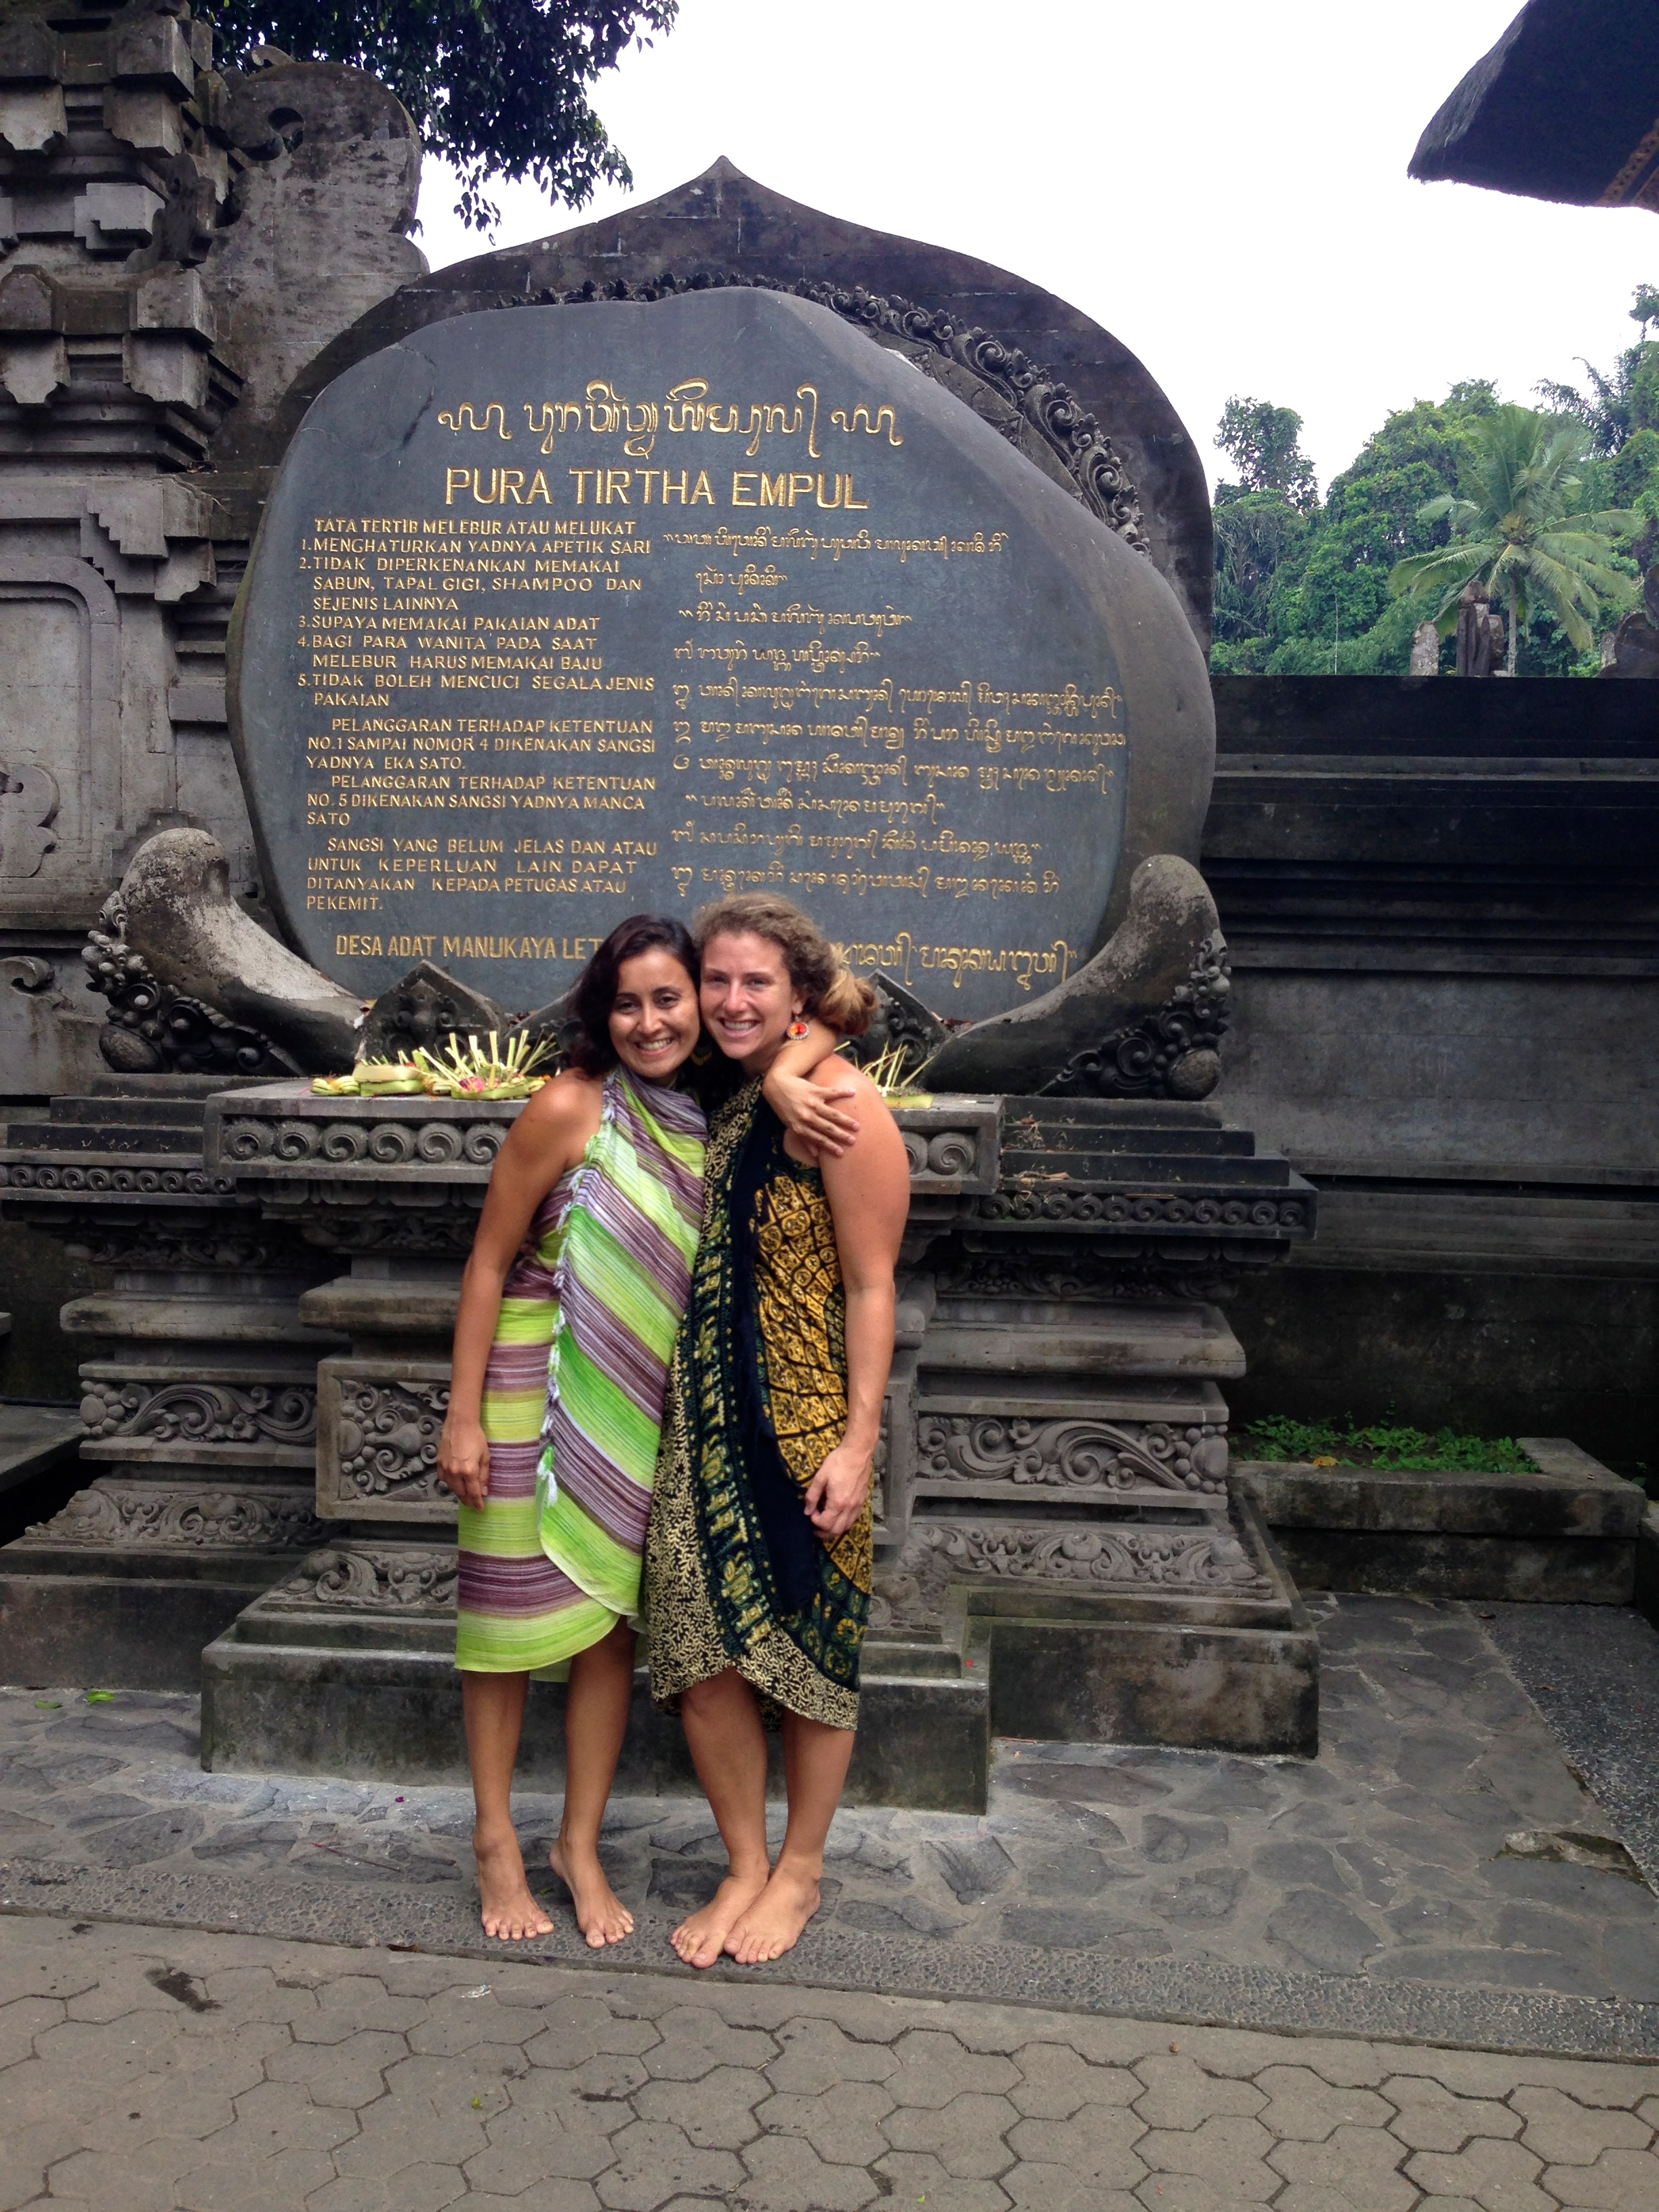 Getting ready to enter the purifying & sacred waters from natural springs at the Pura Tirta Empul (temple)... what a tremendous experience.  Pictured with Swashna, one of the SYS students, and beautiful soul!